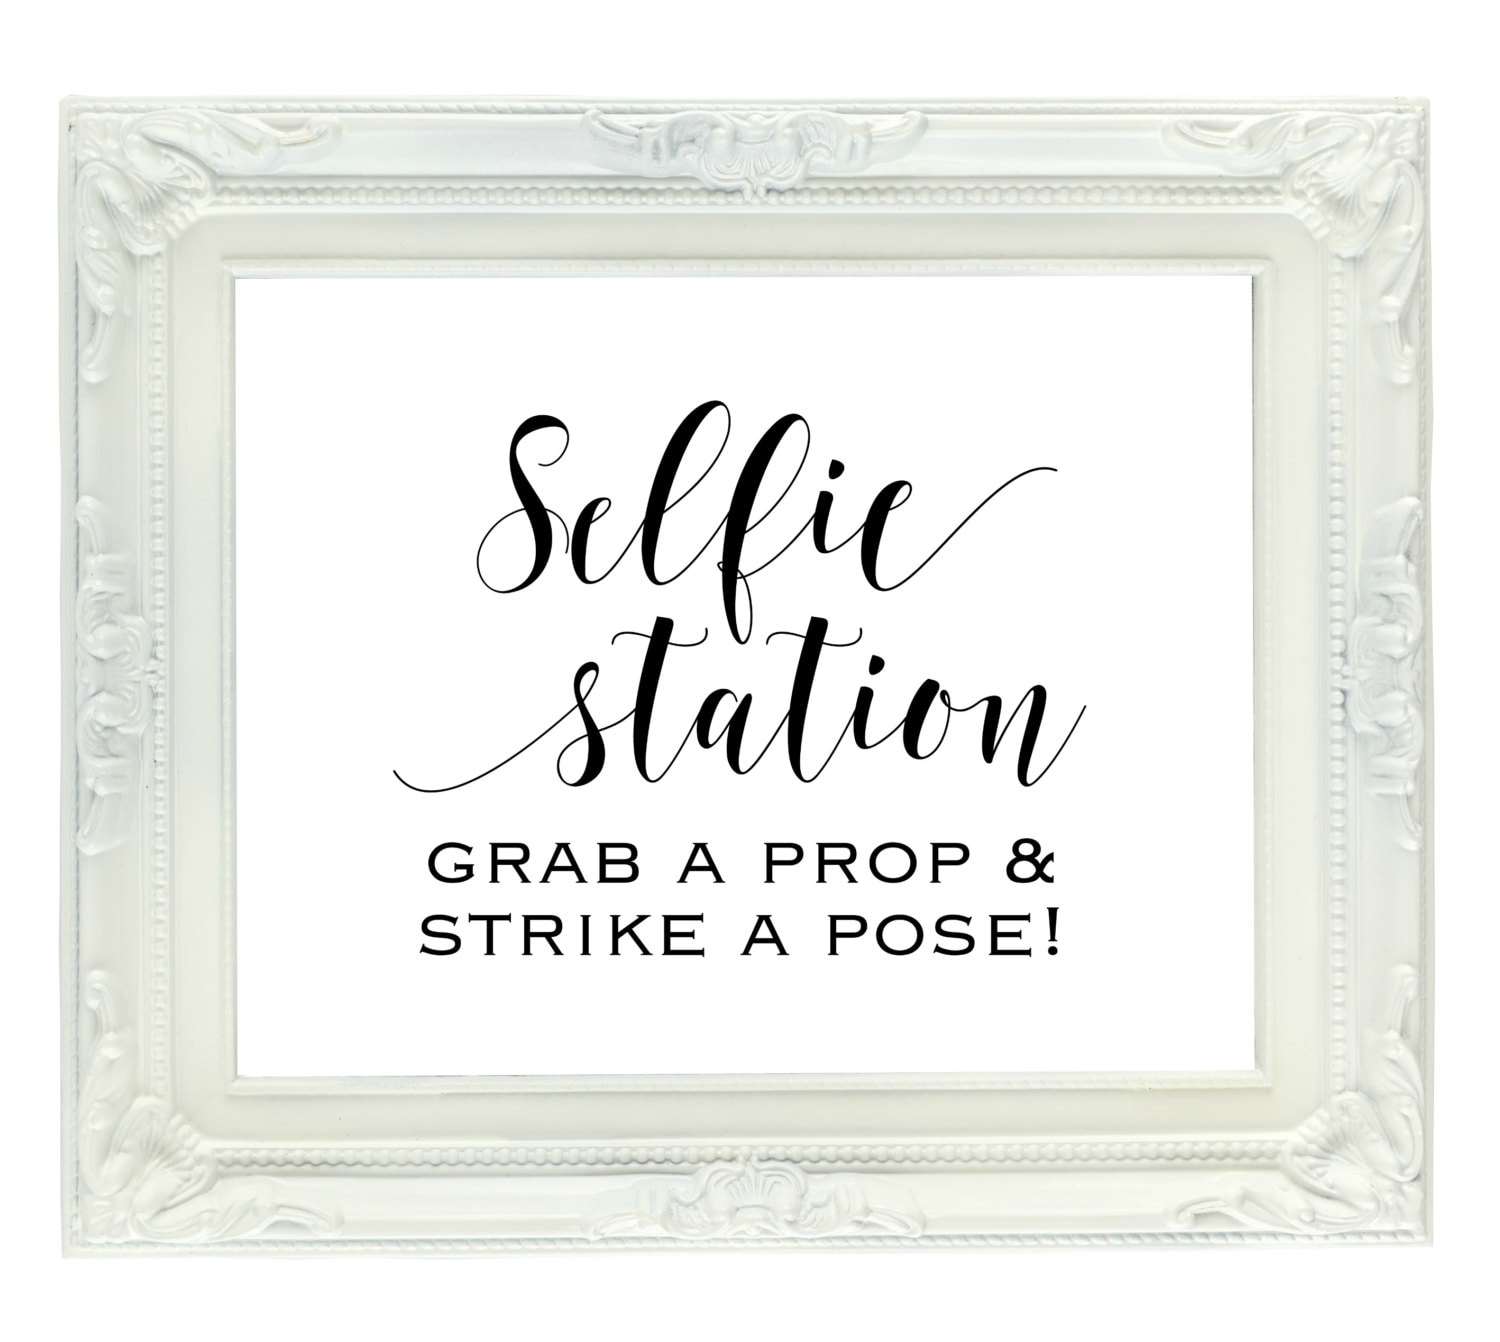 It's just a picture of Soft Selfie Station Sign Free Printable